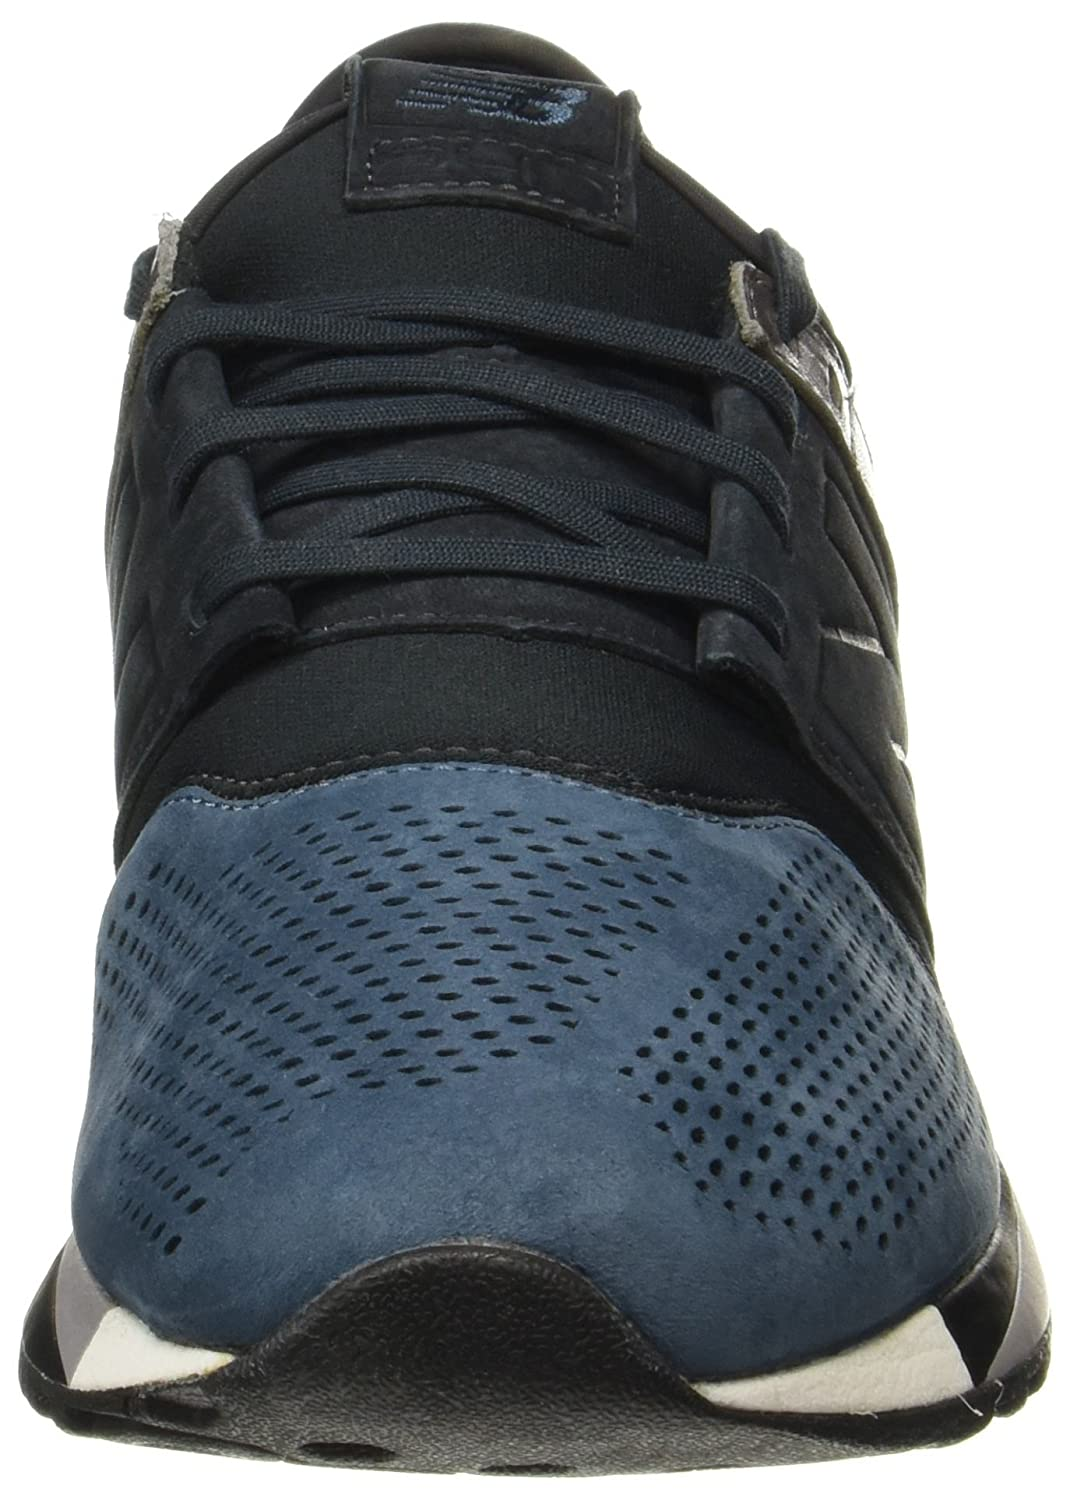 new balance sneakers 247 luxe uomo mod. nbmrl247